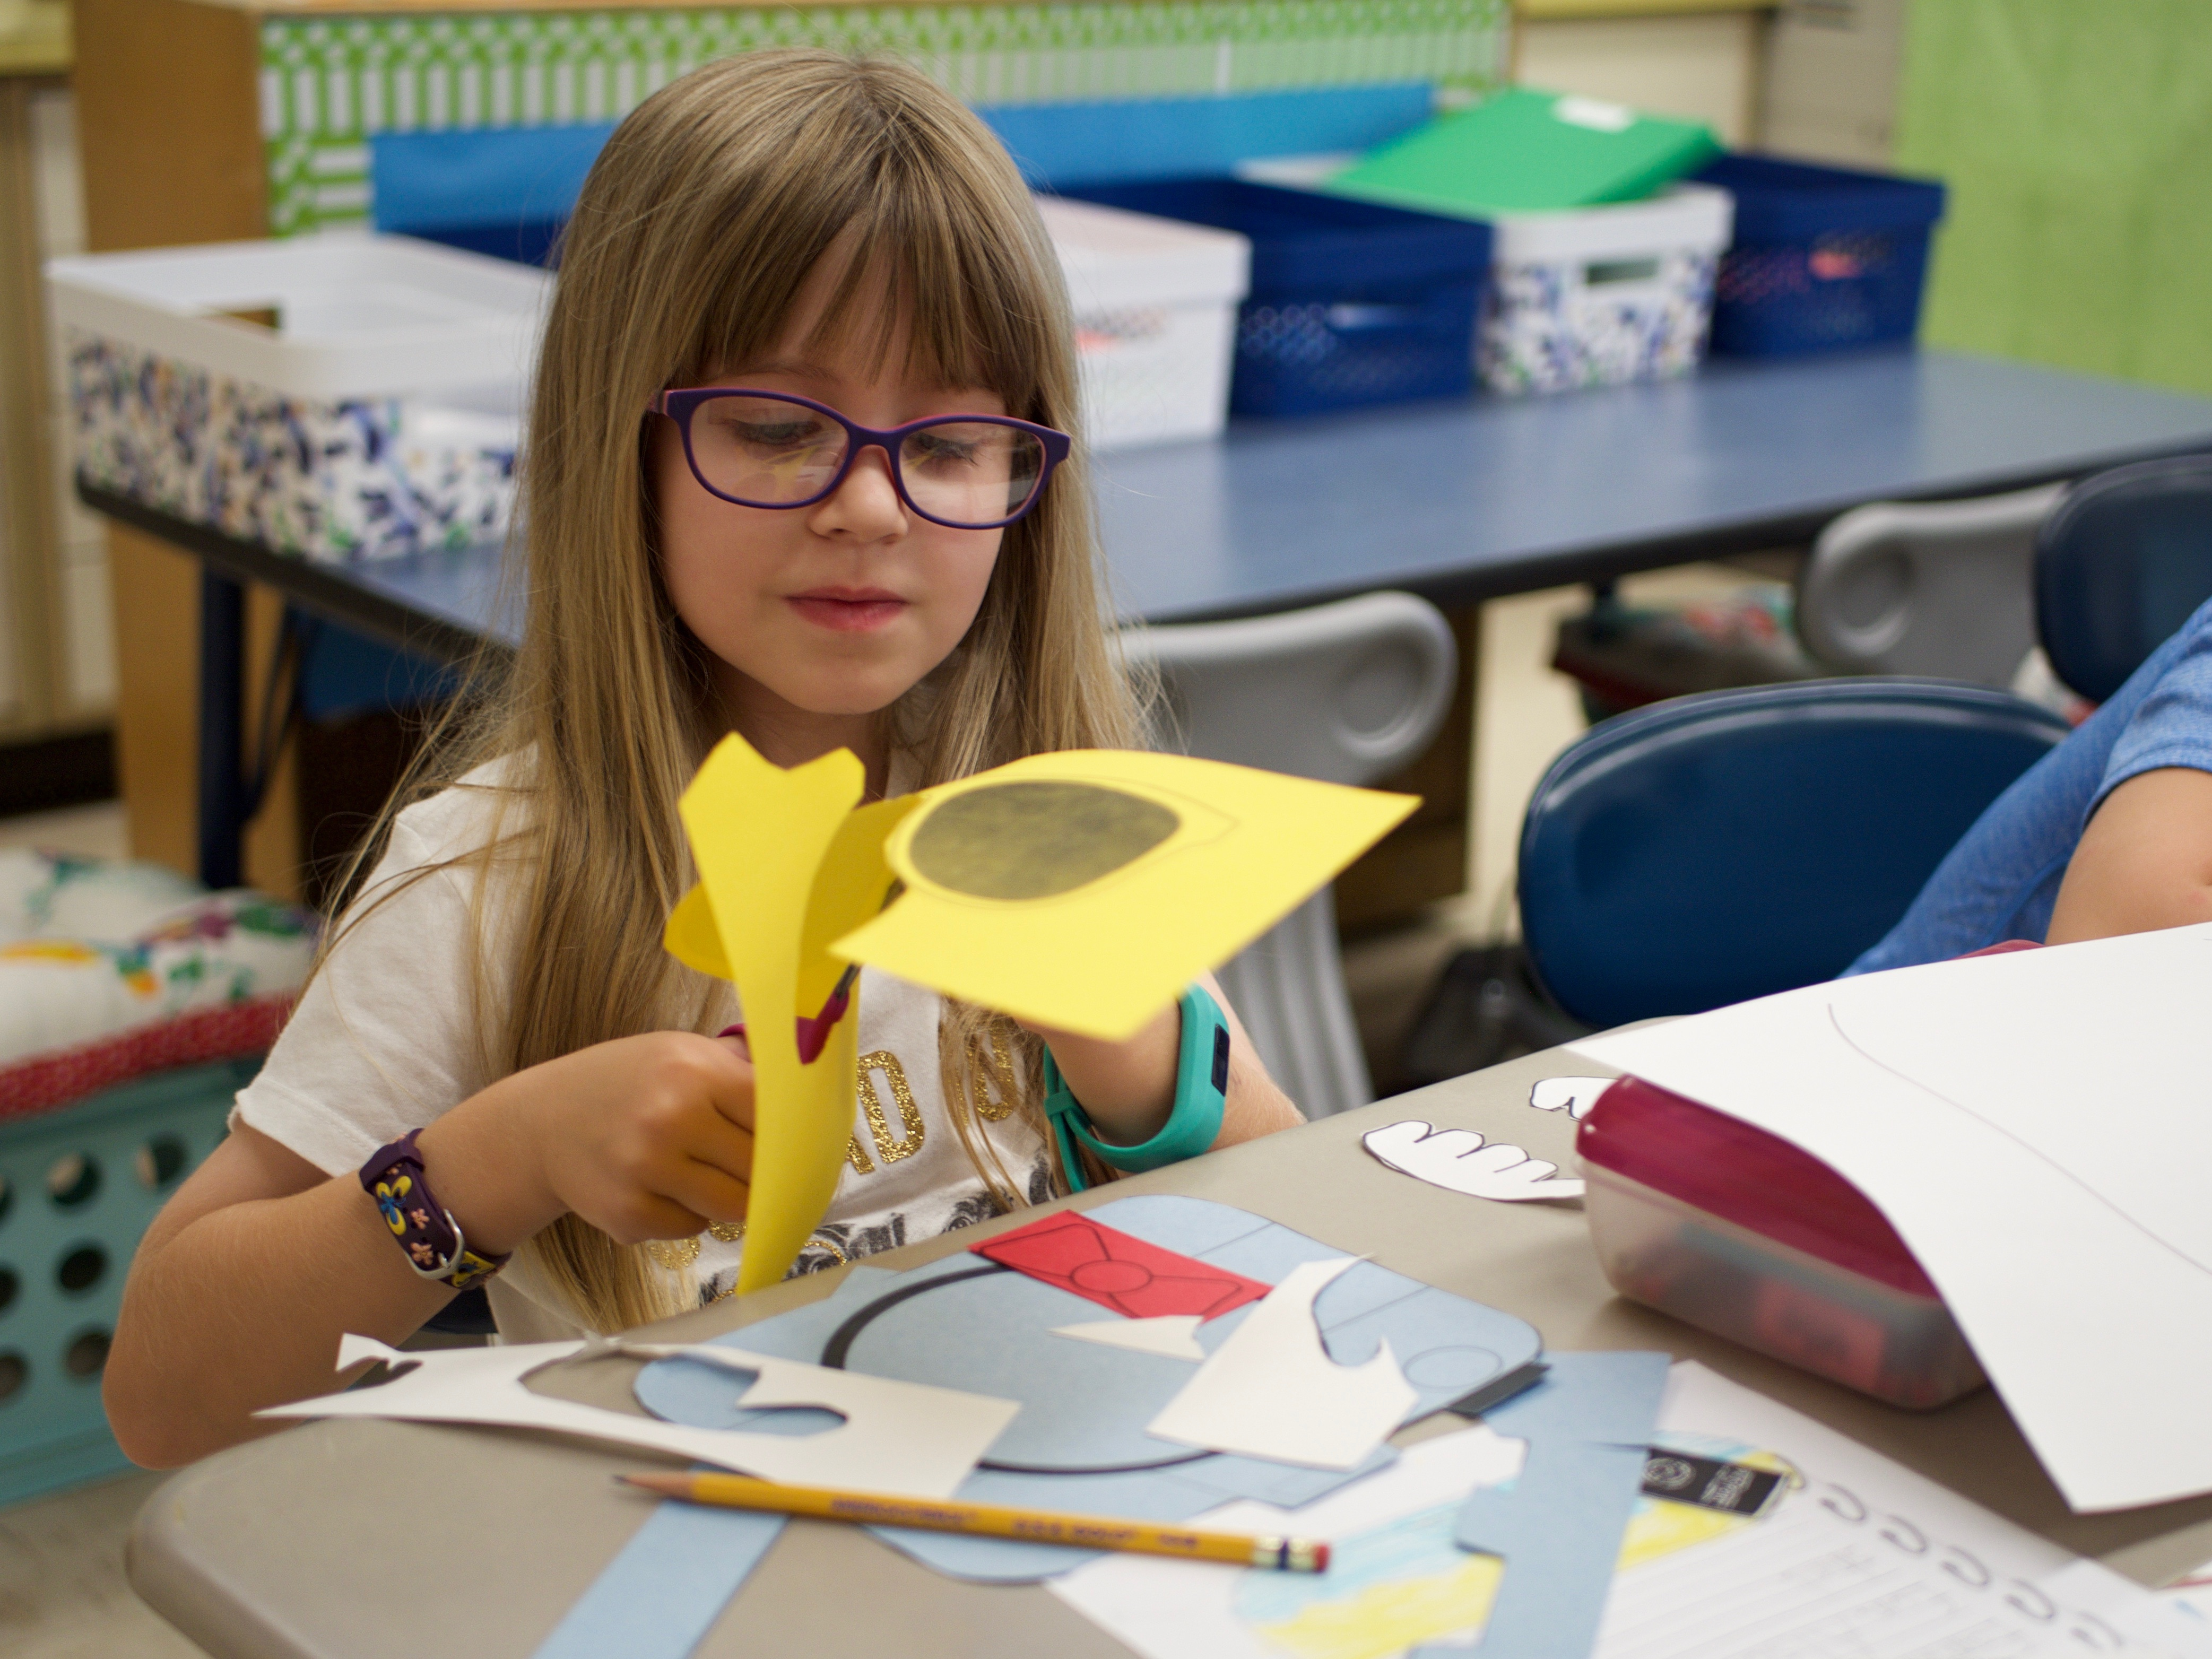 Slideshow: Girl cuts out yellow paper sunglasses with scissors